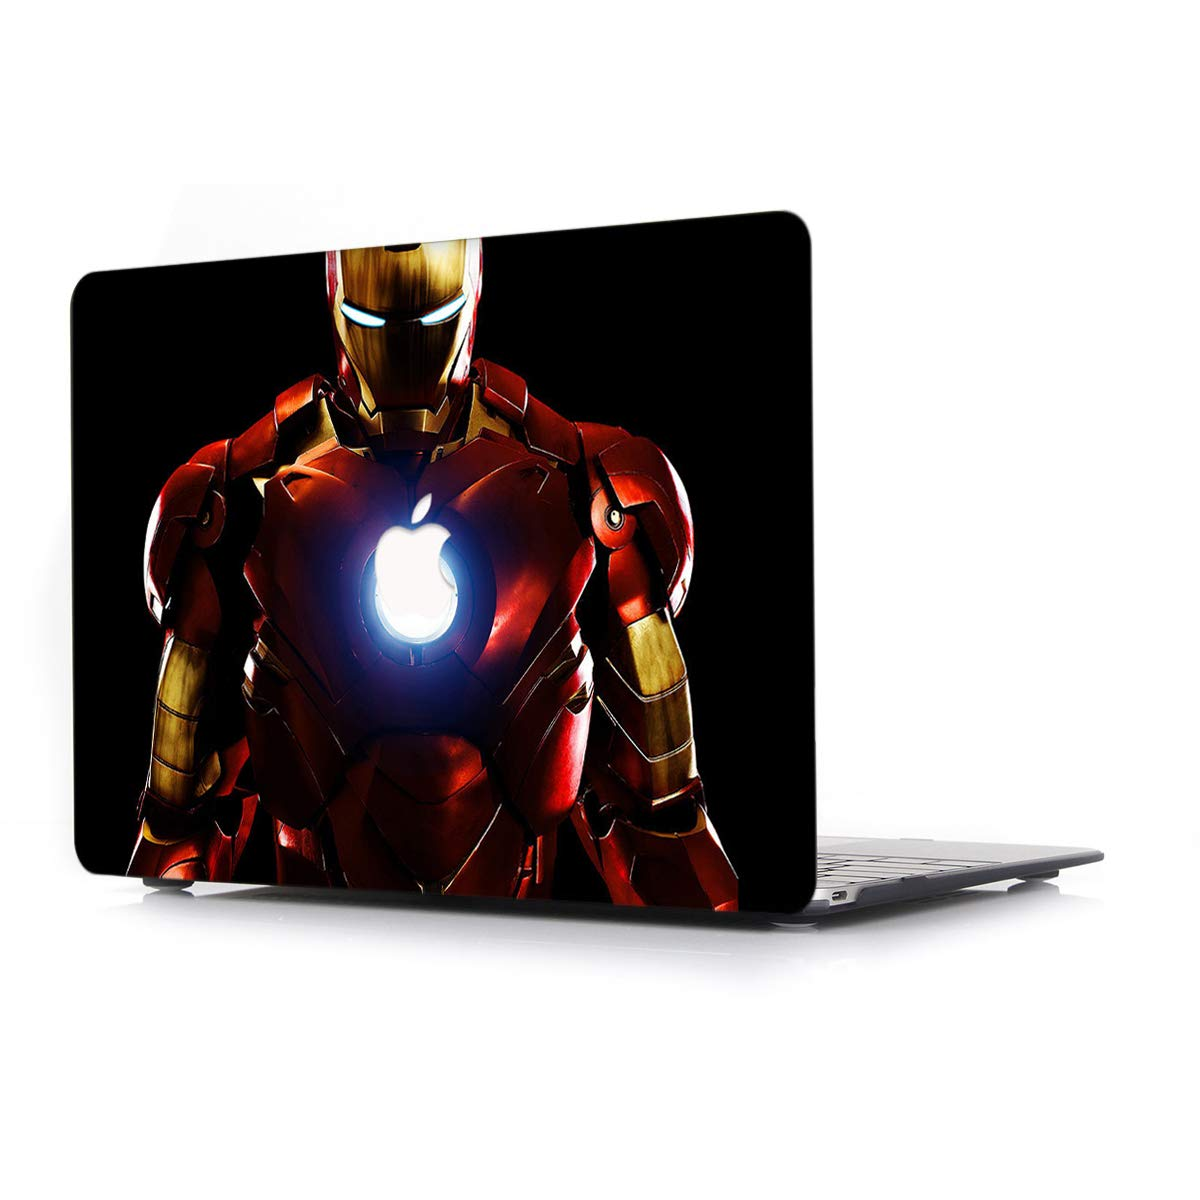 Model A1466//A1369 Old Hard Case for Apple MacBook Air 13.3 Inch L2W Laptop Computers Accessories Plastic Smooth Print Protective Creative Design Cover Iron Man